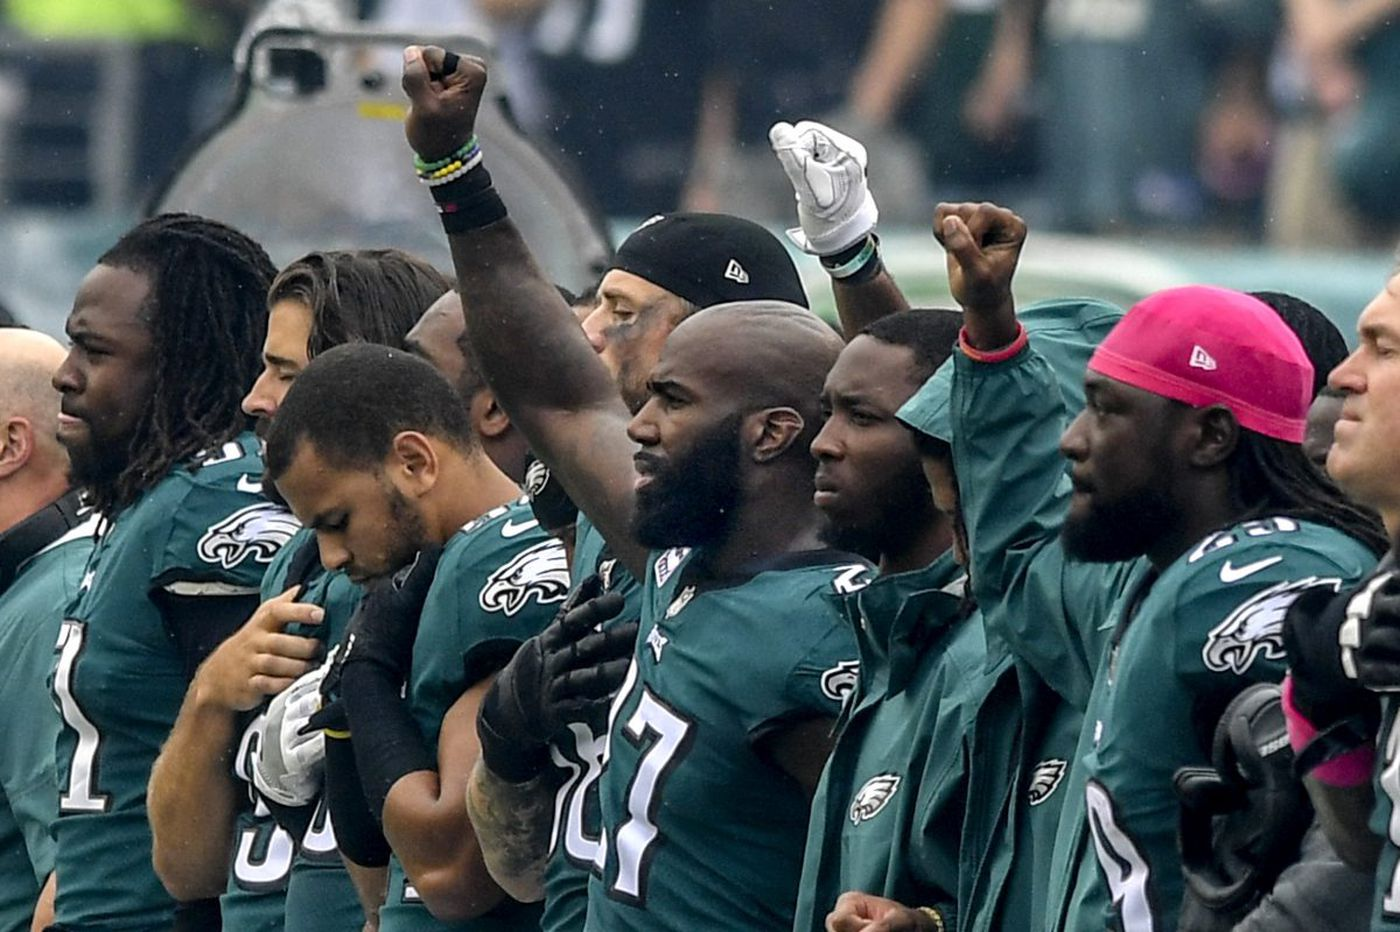 Malcolm Jenkins is still the perfect leader for Players Coalition, even as he loses some support | Bob Brookover